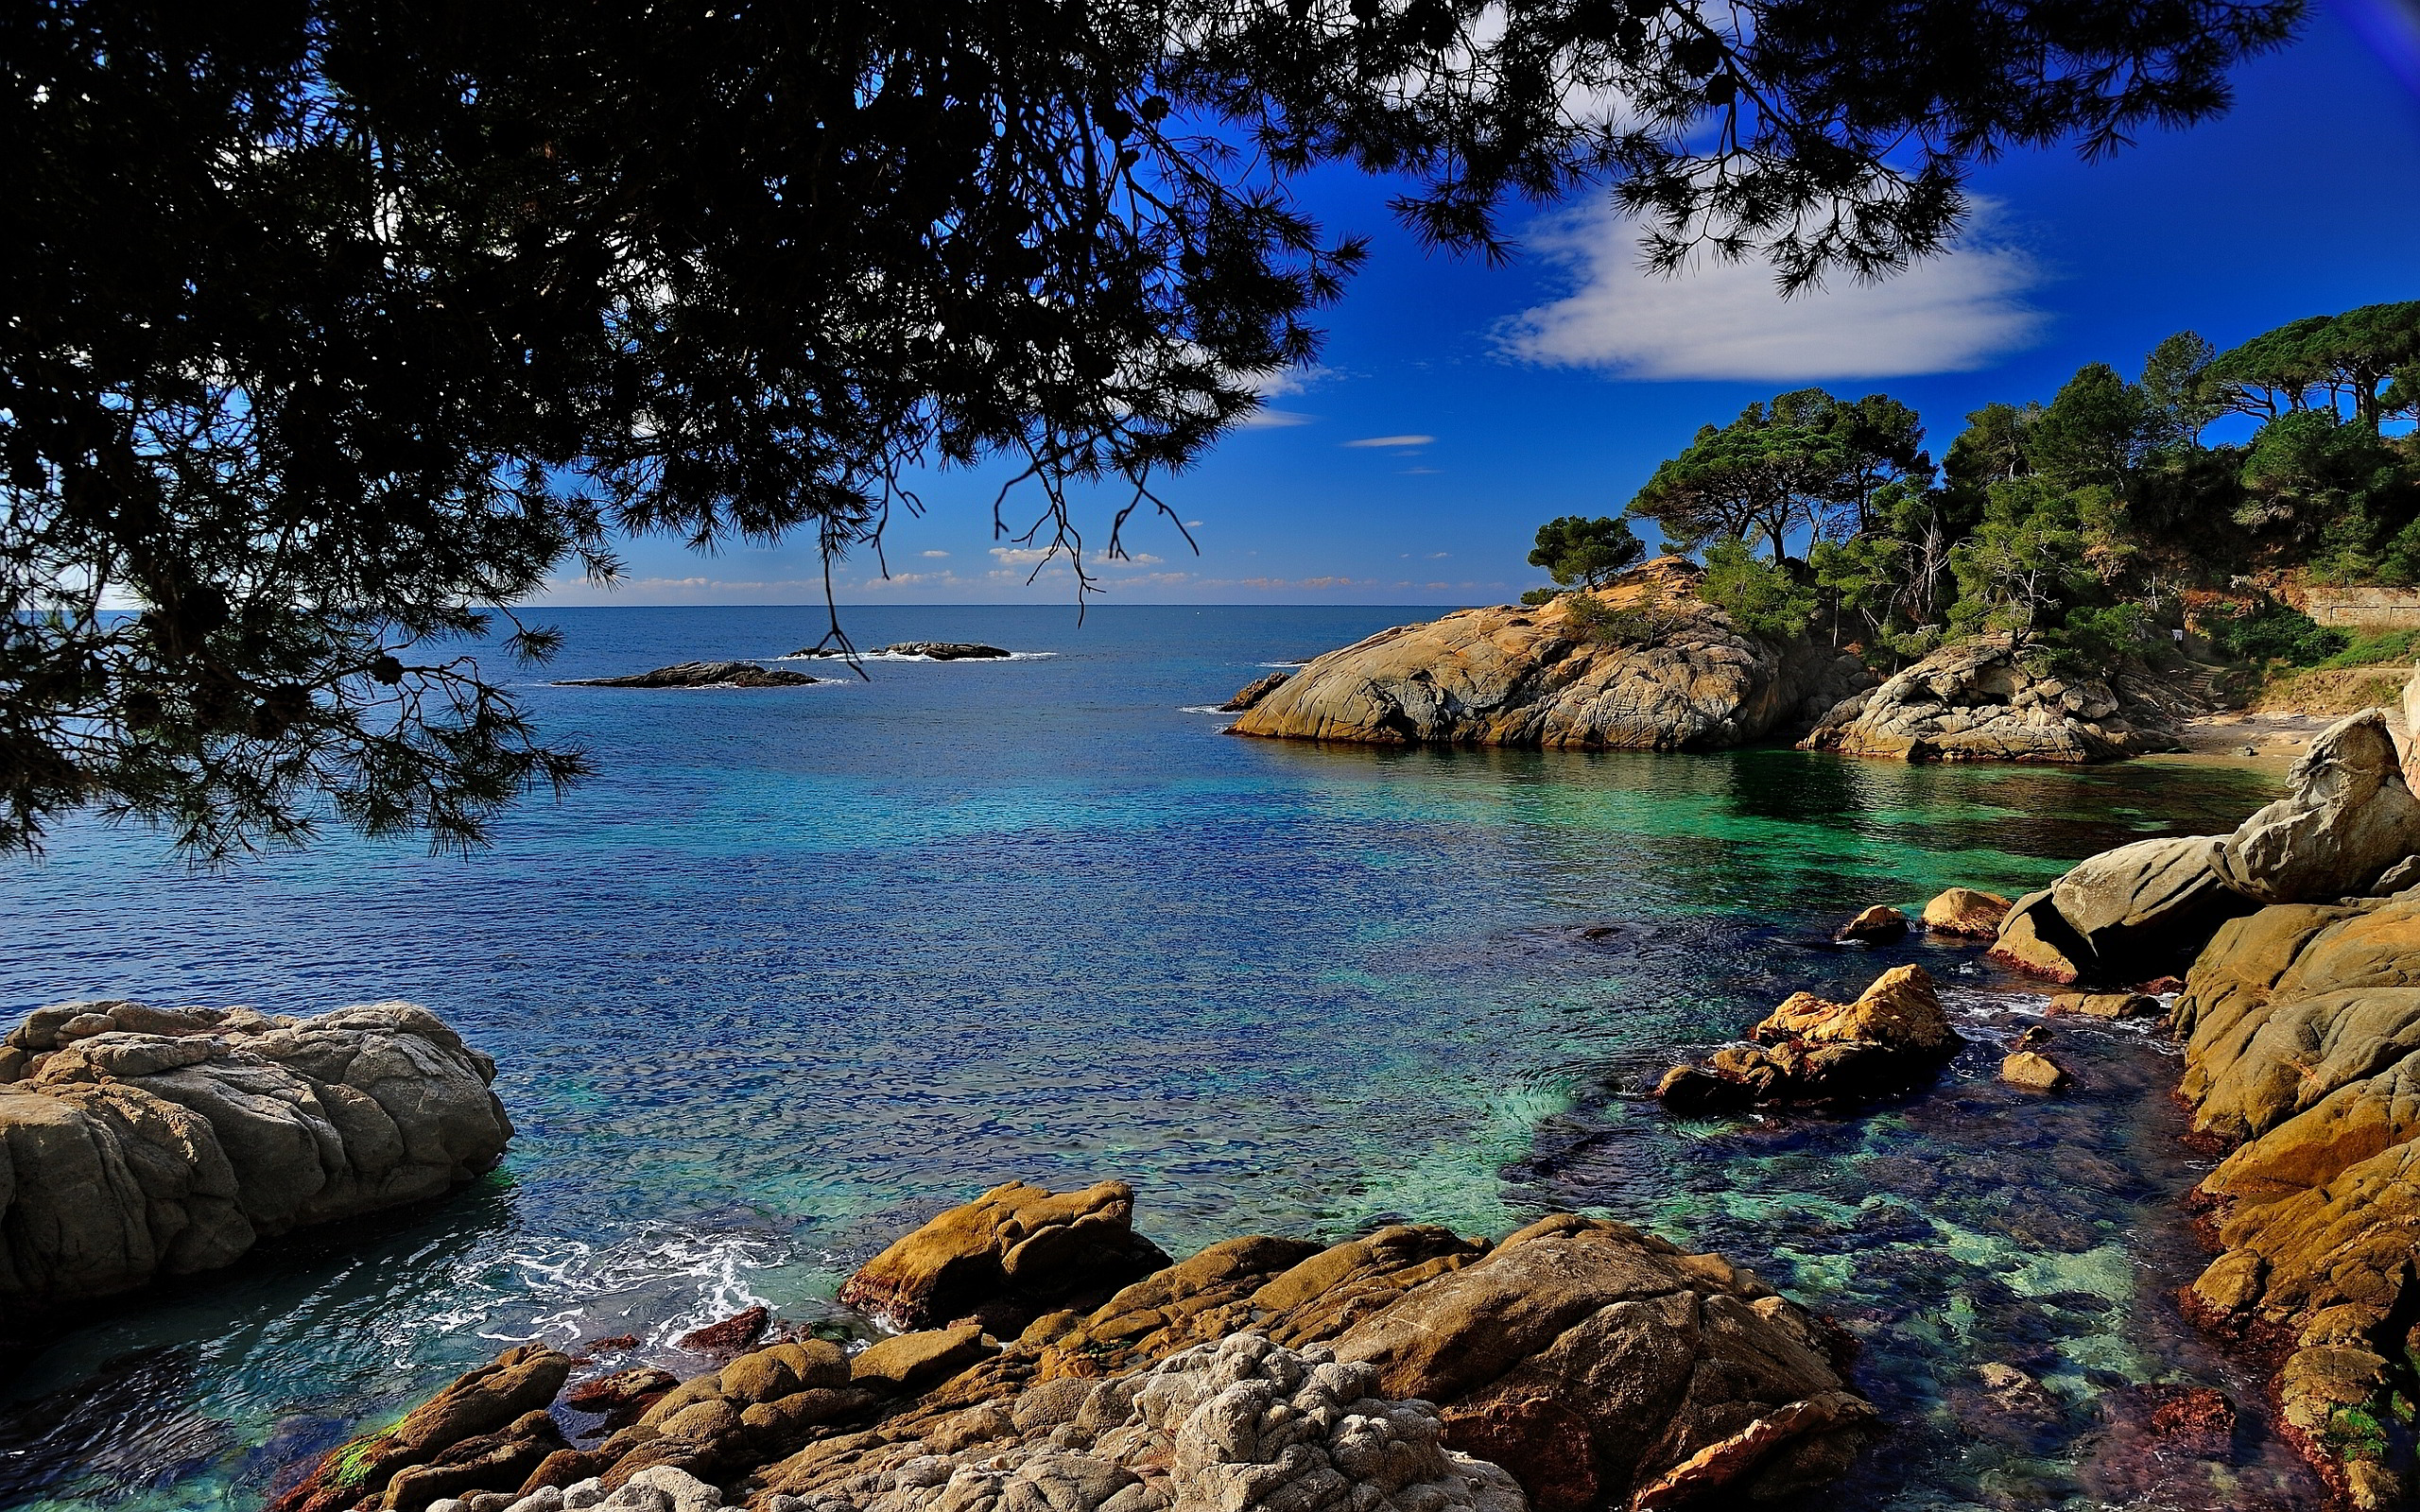 Songs of the Sea at La Costa Brava